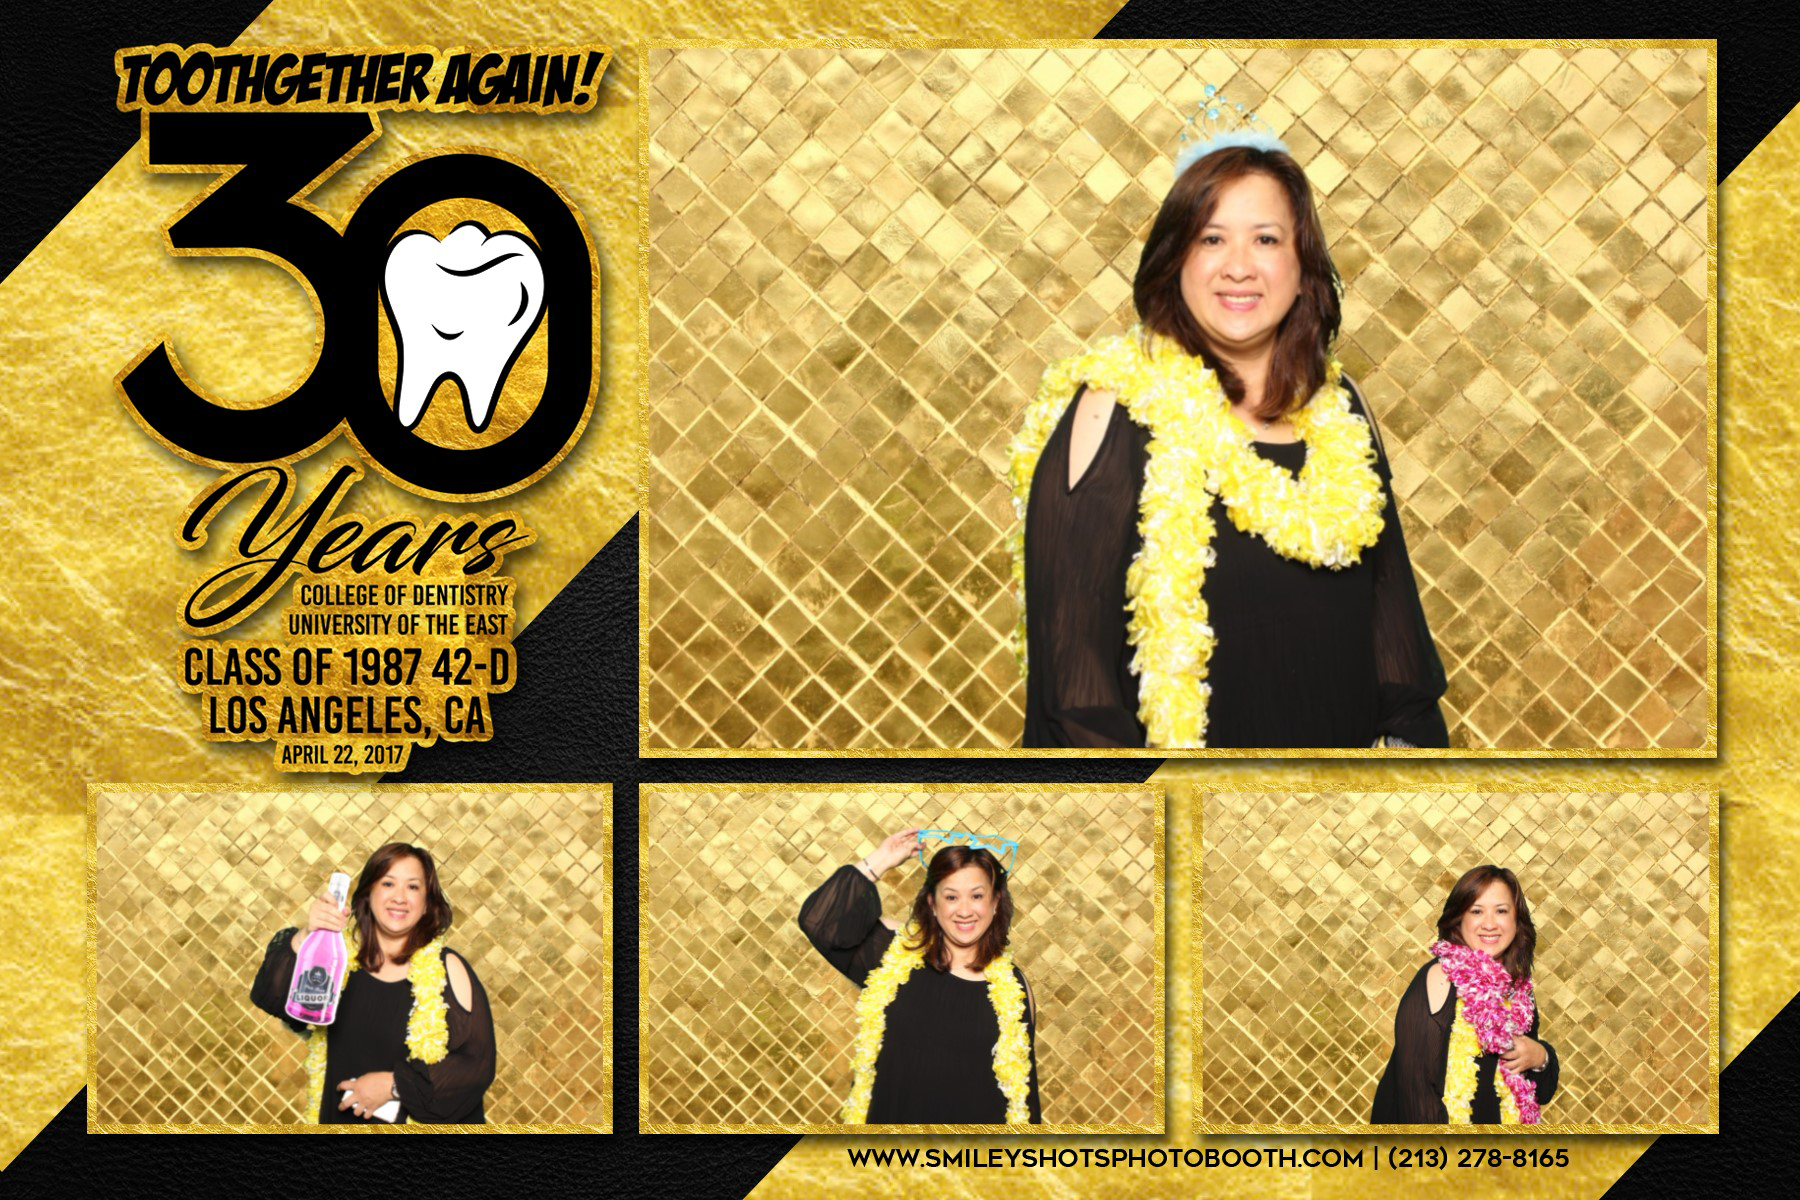 30th Years Dental UE Smiley Shots Photo Booth Photobooth (11).png